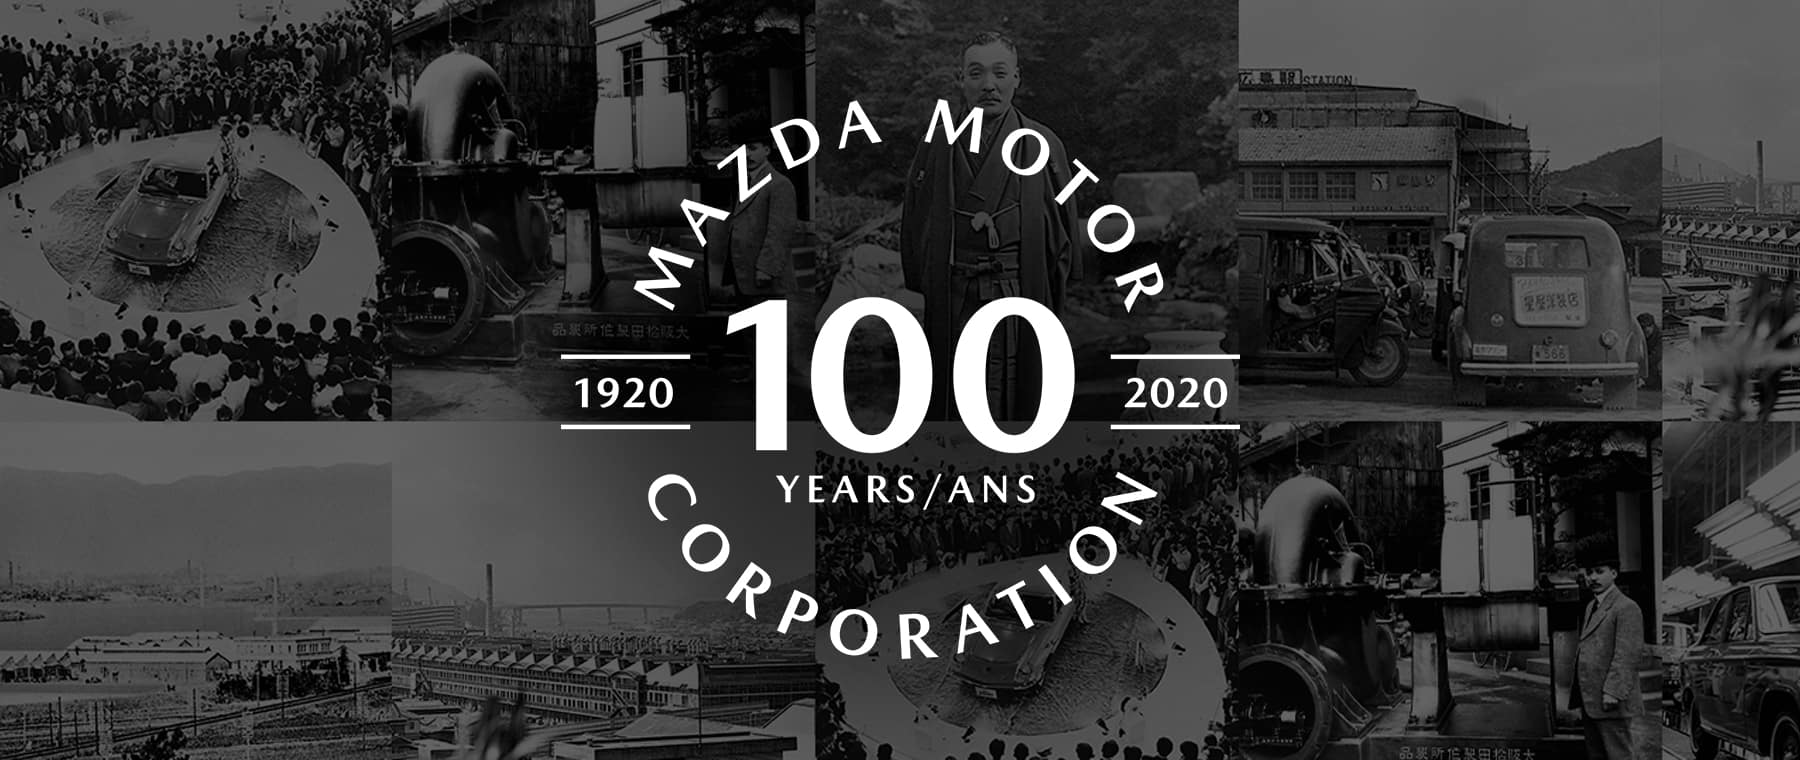 center emblem of 100th anniversary with black and white pictures behind